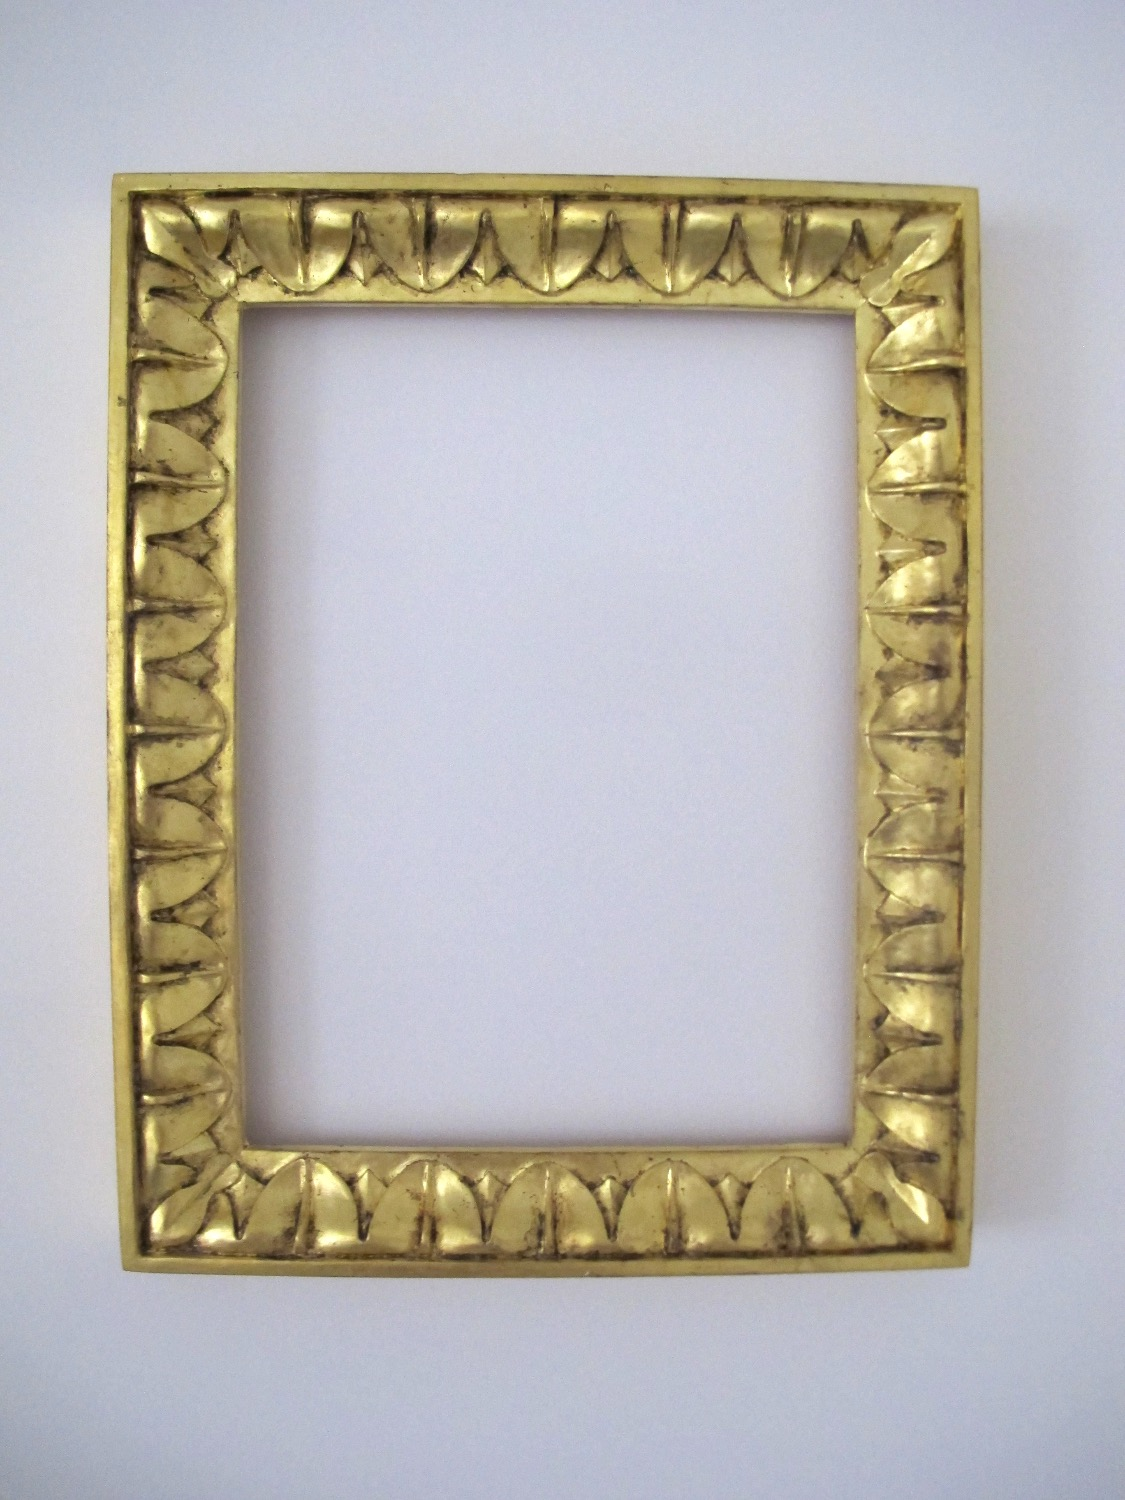 Waterleaf Frame